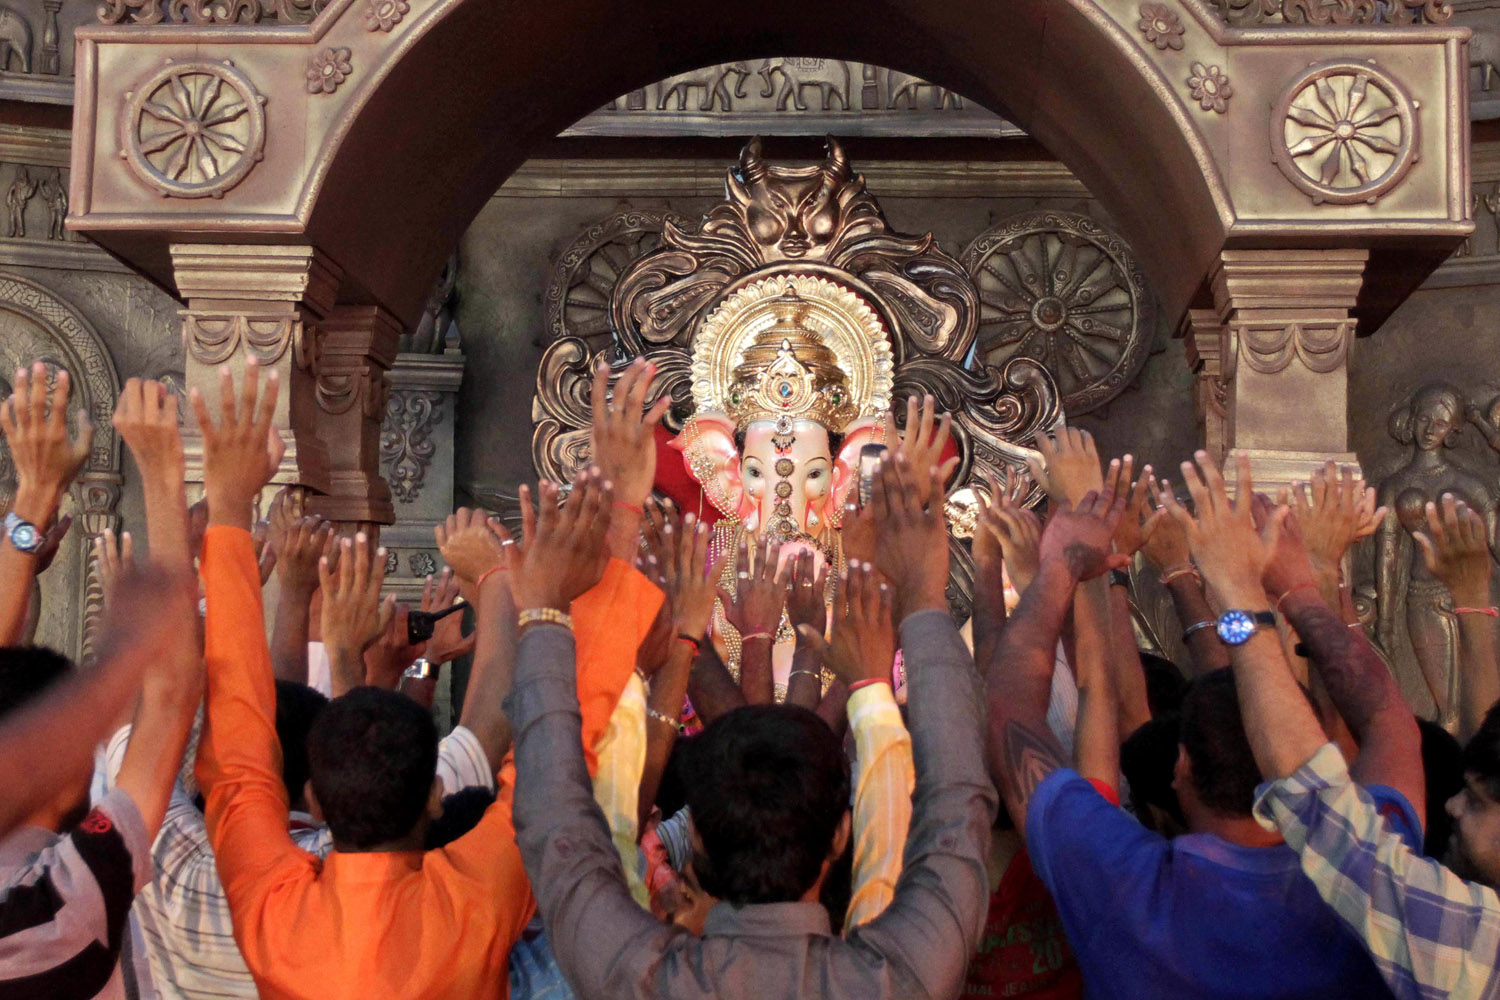 Sept. 19, 2012. Indian devotees raise their hands as they pray in front of an idol of the elephant-headed Hindu God Ganesha in Ahmadabad, India.